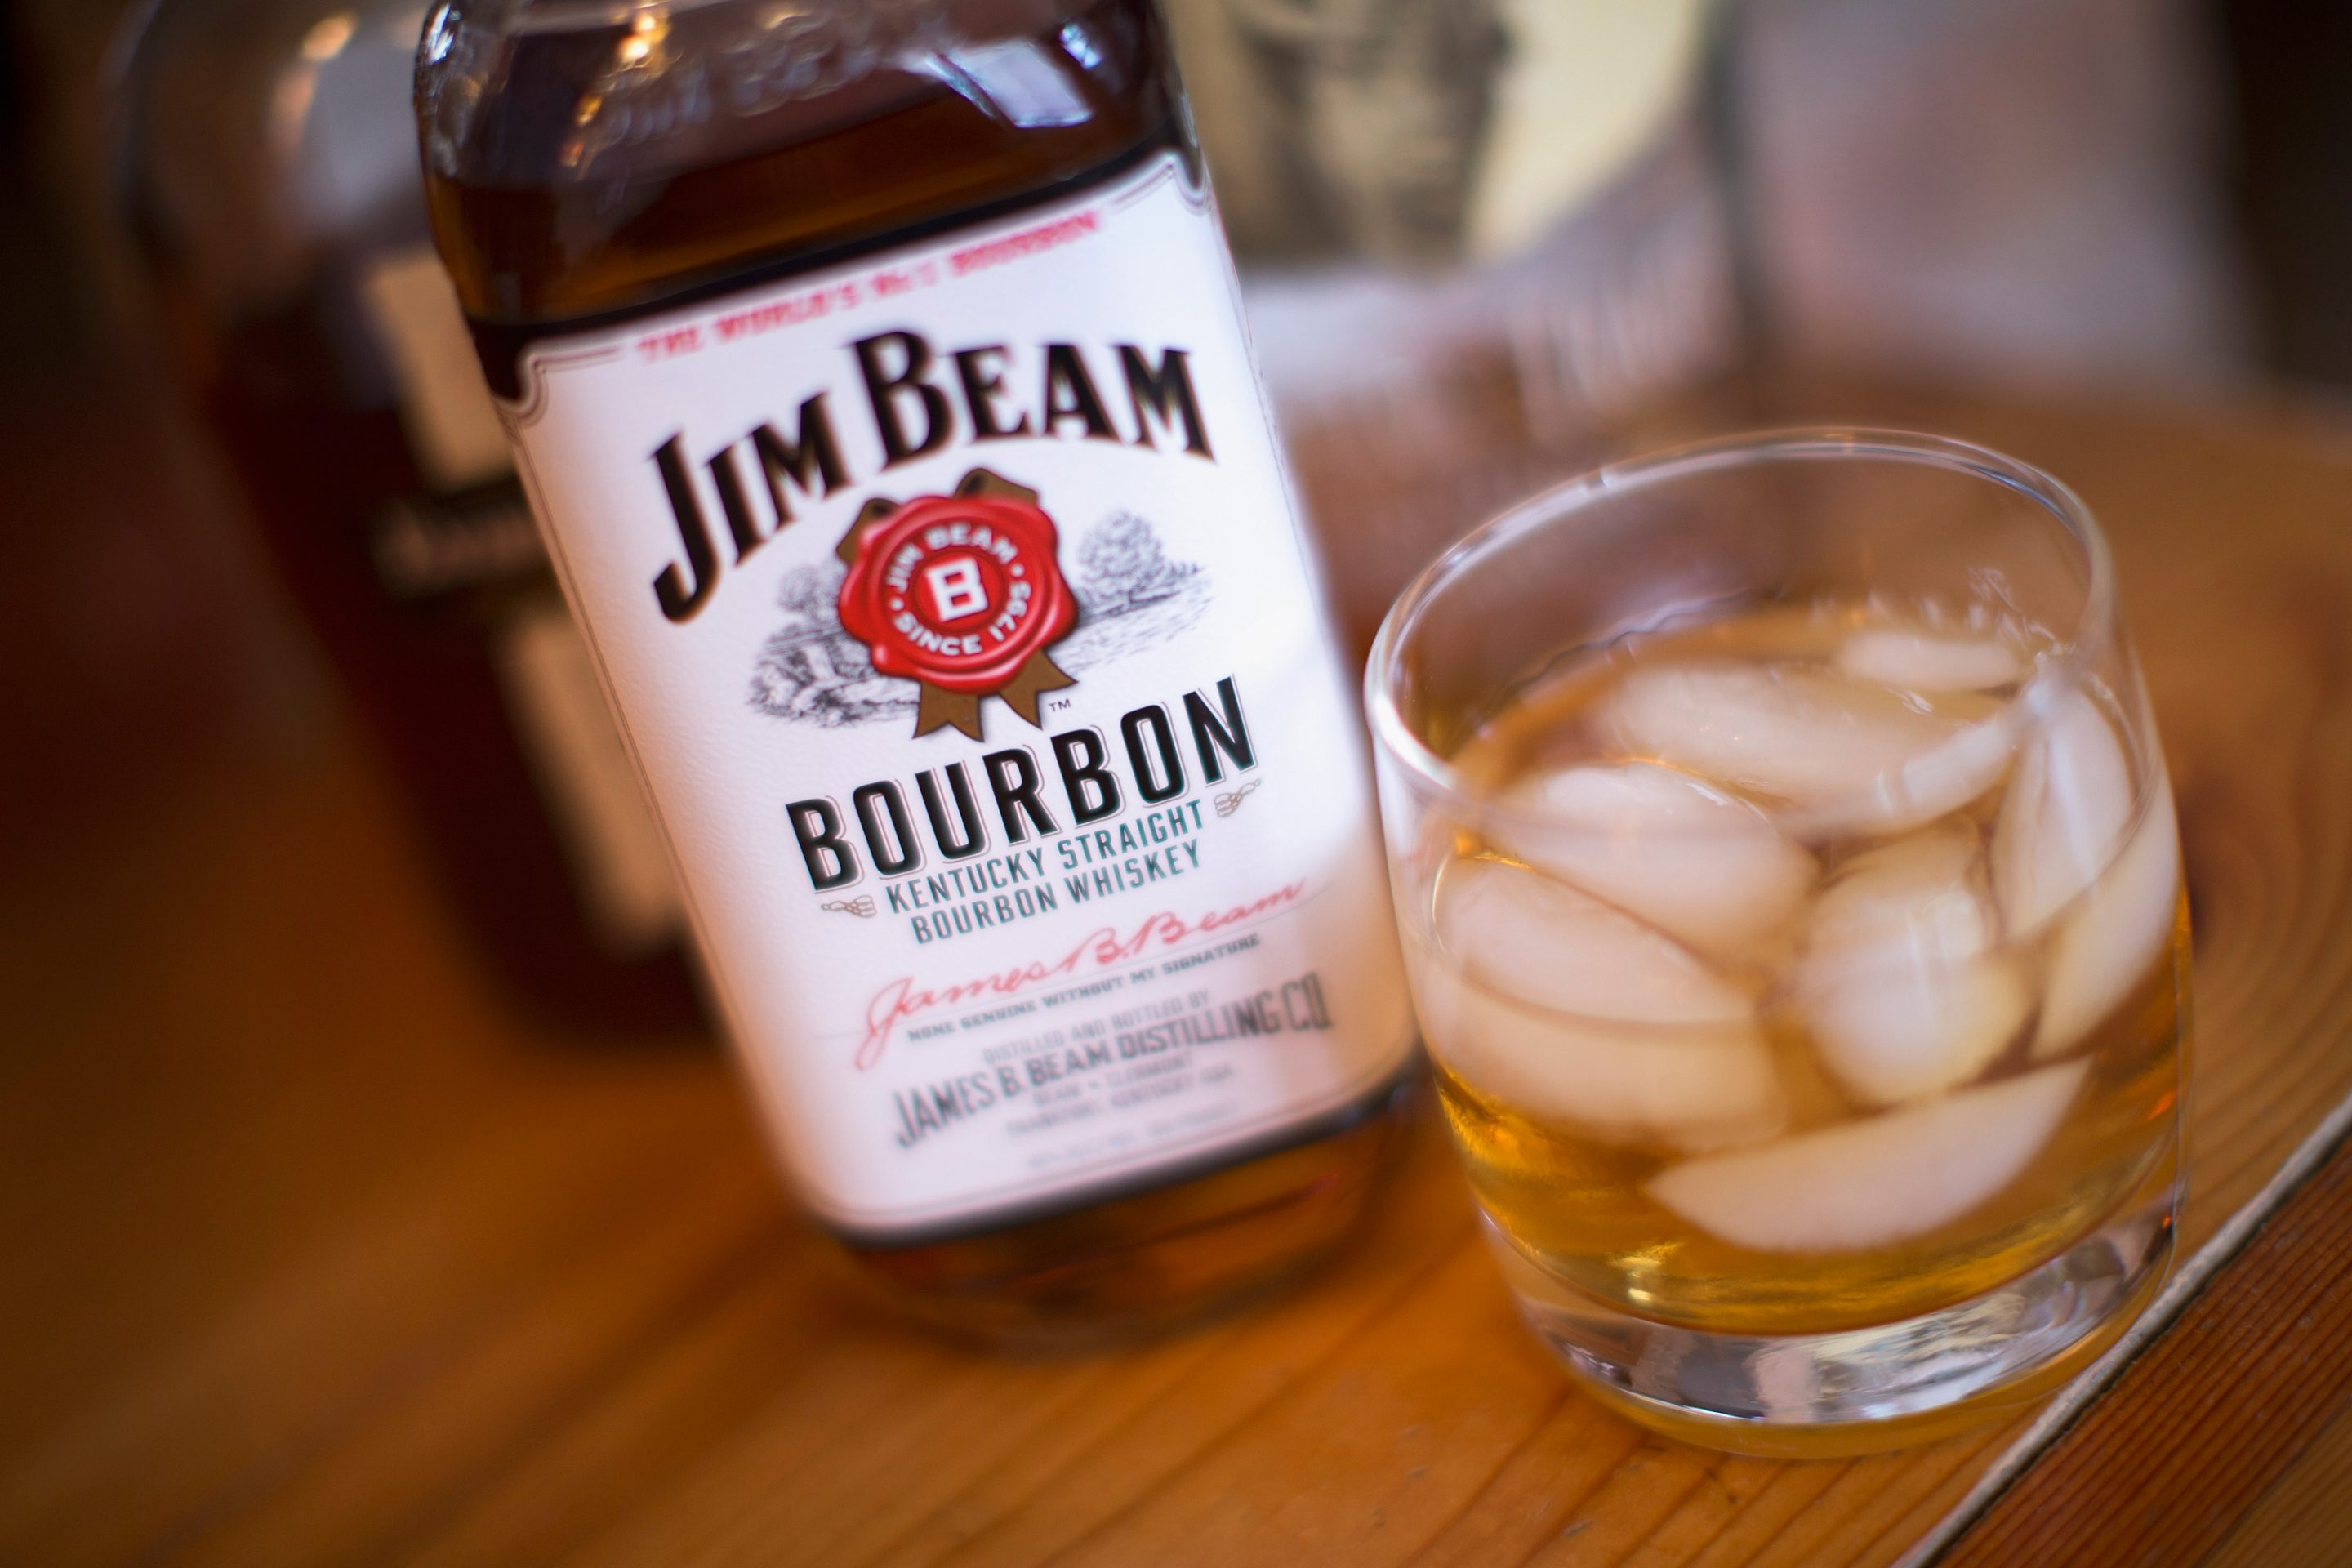 A bottle of Jim Beam bourbon sitting next to a glass of bourbon on the rocks